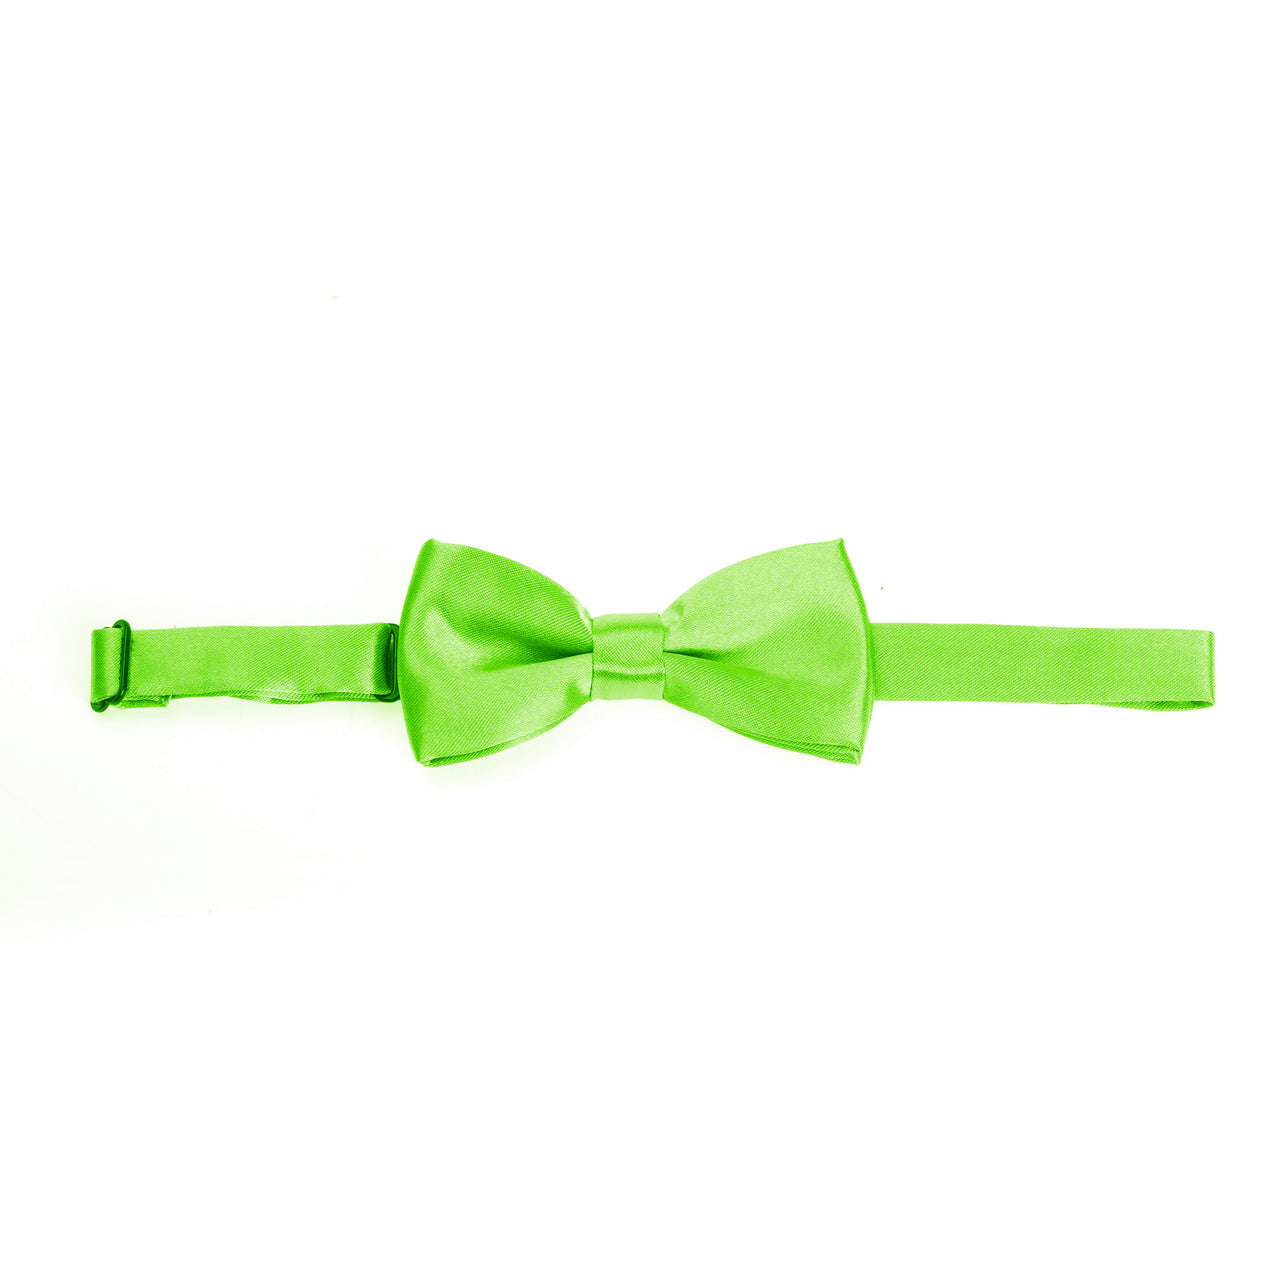 Kids Pre-tied Plain Satin Bow Tie - Lime Green